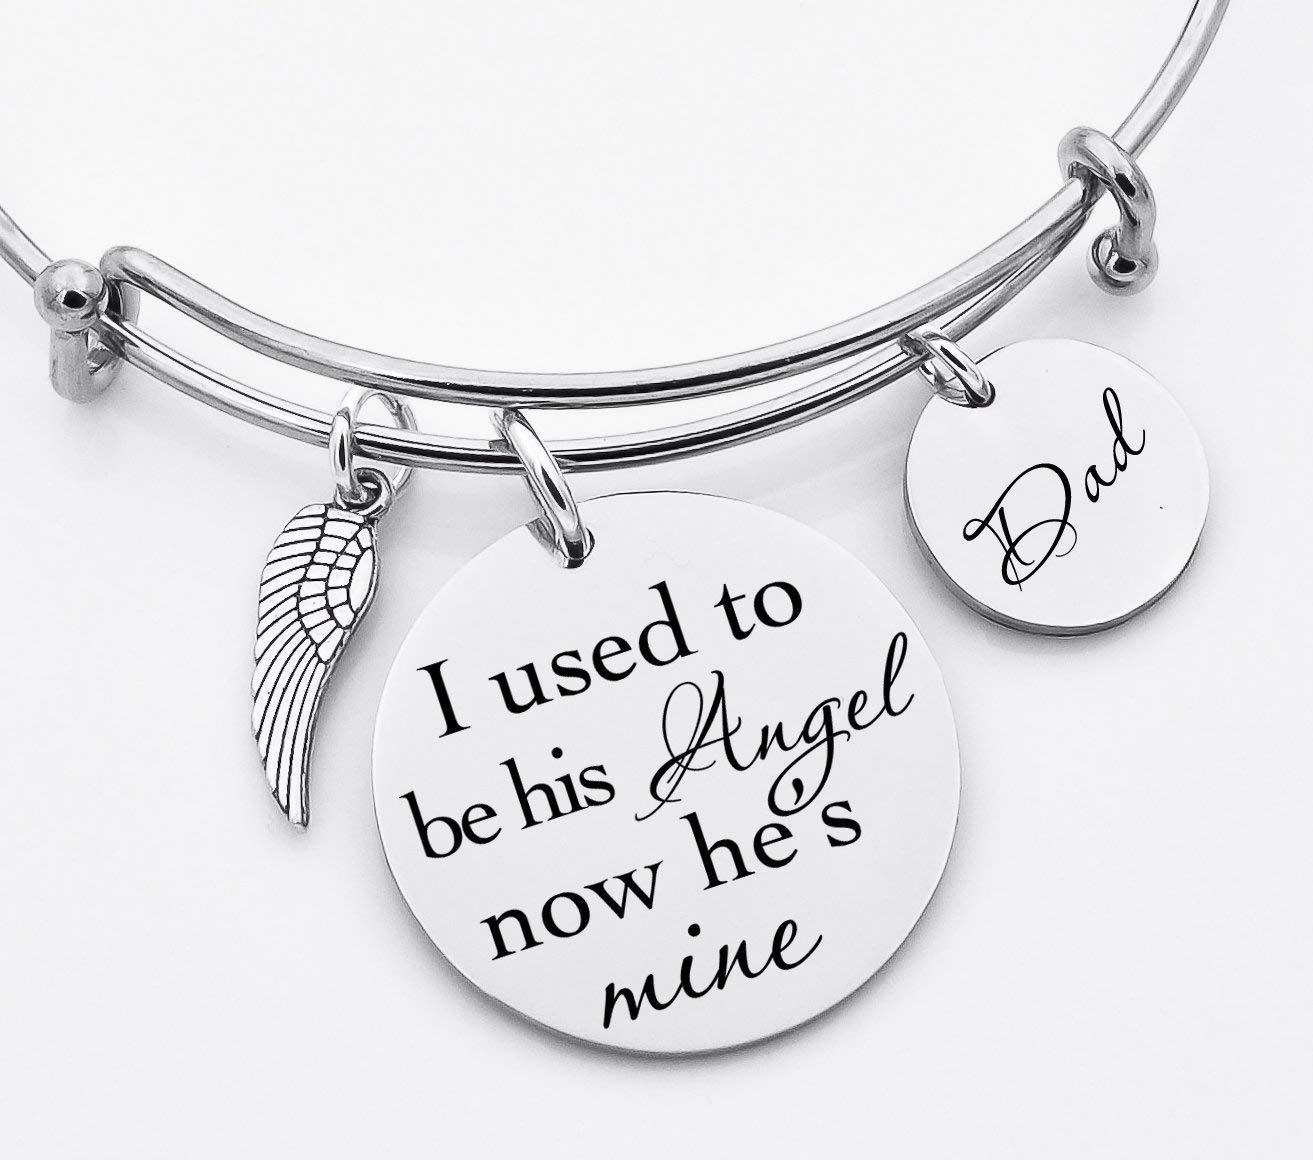 Memorial jewelry, I used to be his angel now he's mine bangle bracelet, stainless steel bangle, loss of loved one, sympathy gift, mom, dad, name, adjustable bangle bracelet.